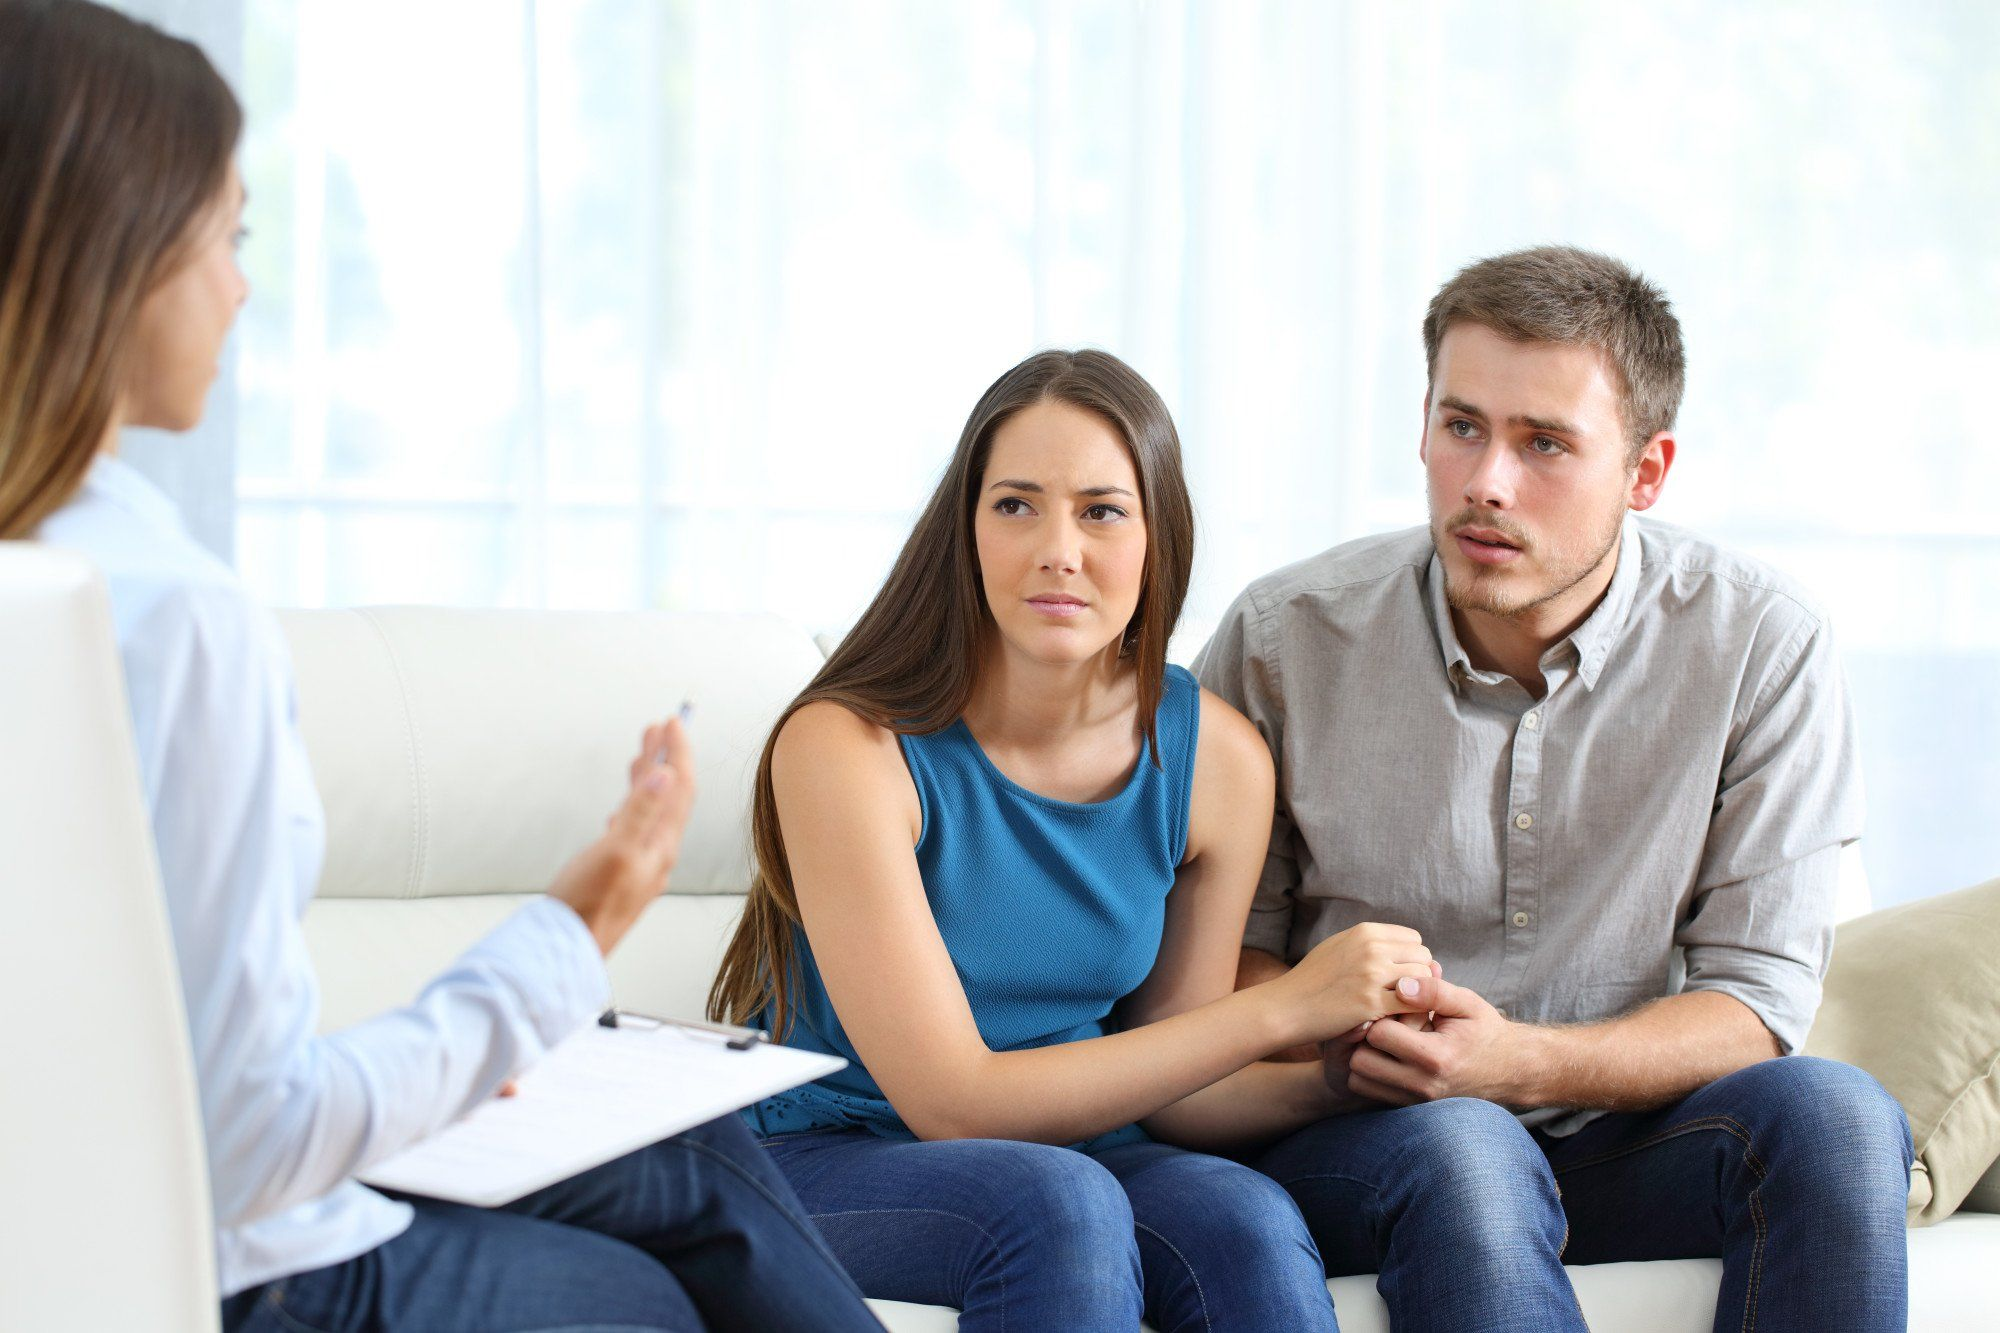 Worried couple listening to marriage counselor during a session